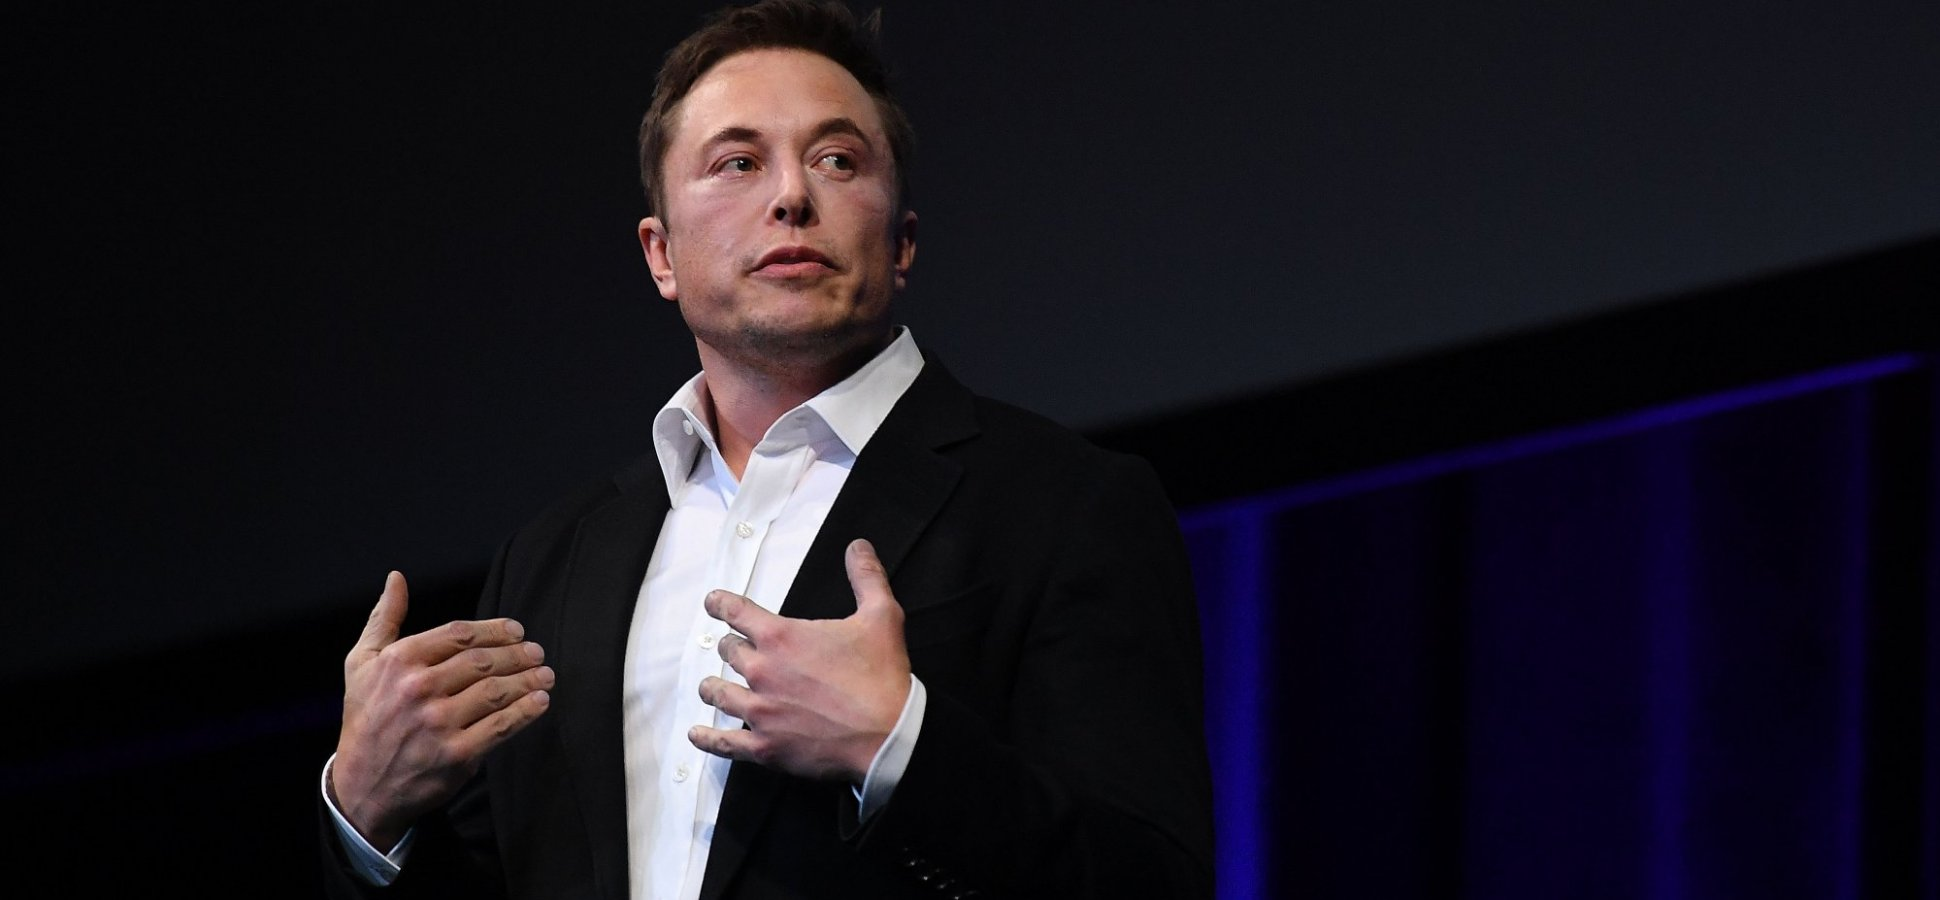 Elon Musk Just Made a Secret Speech to a Very Intimidating Audience. Here's How He Found the Right (and Wrong) Thing to Say